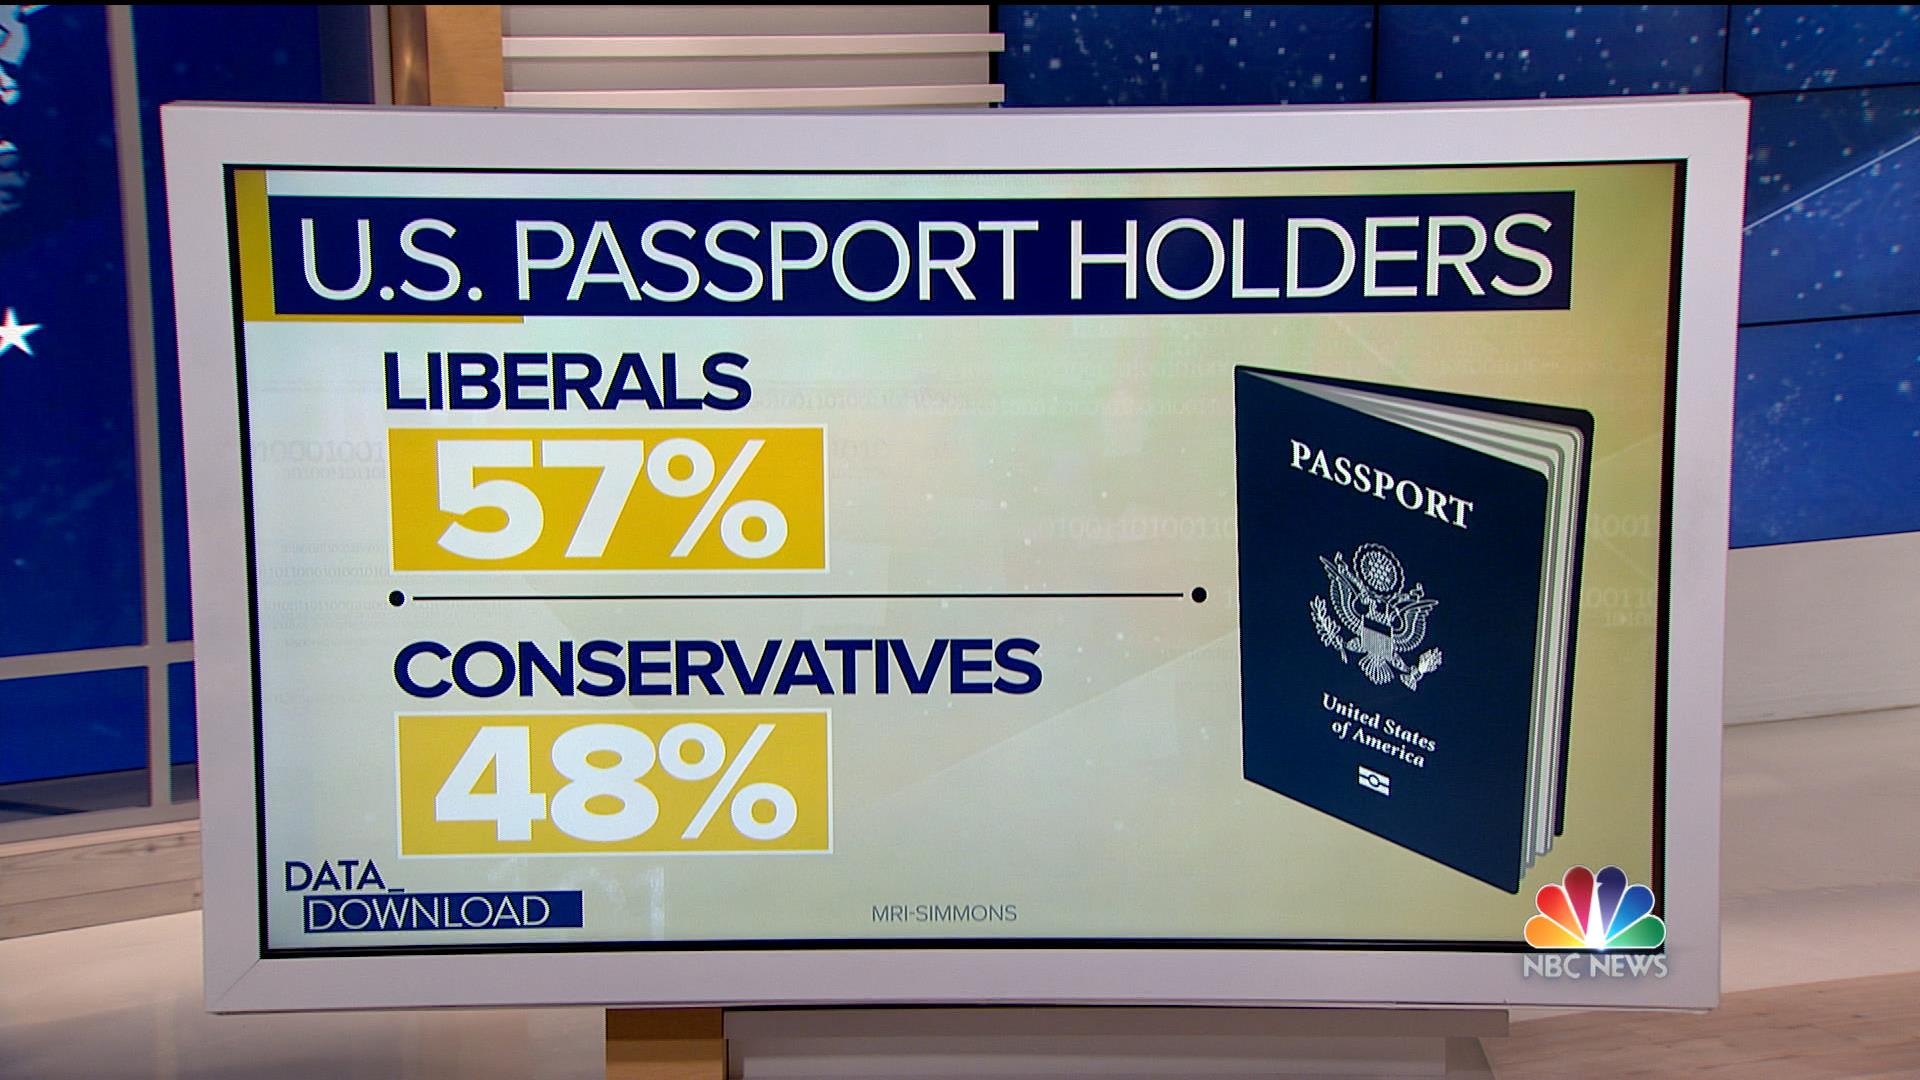 Liberals and Conservatives even vacation differently